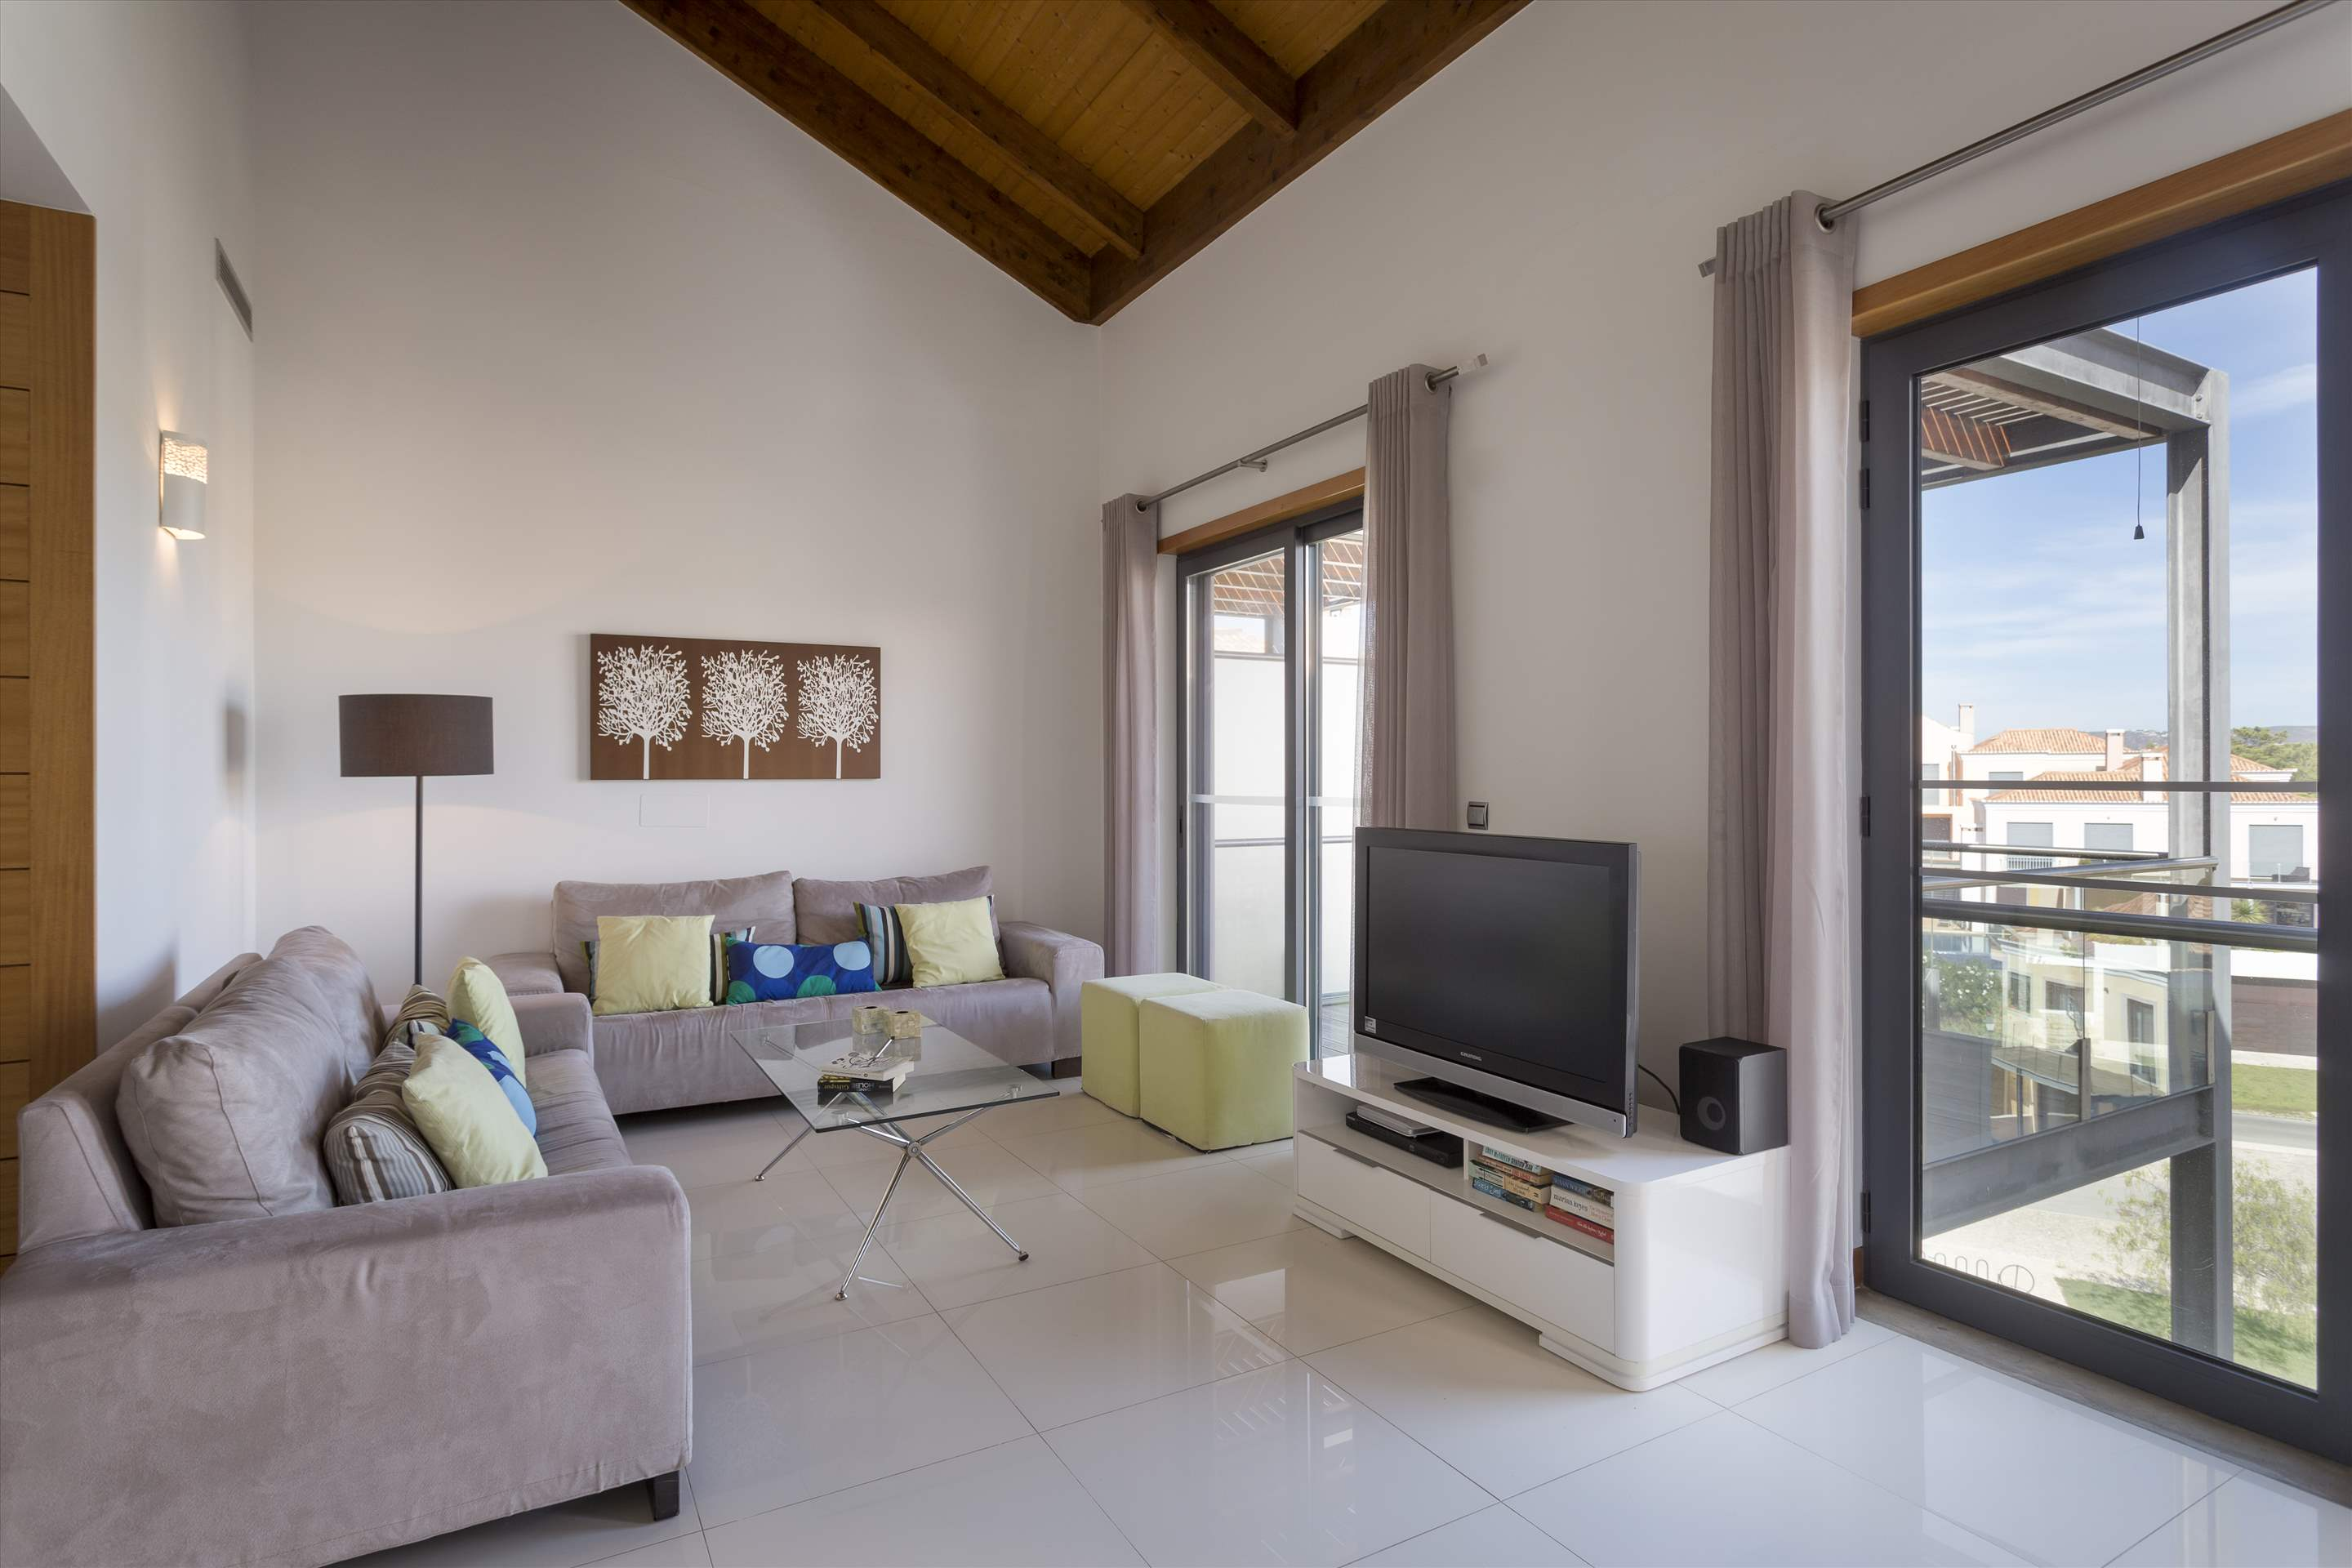 Apartment Rosie, 2 bedroom apartment in Vale do Lobo, Algarve Photo #4